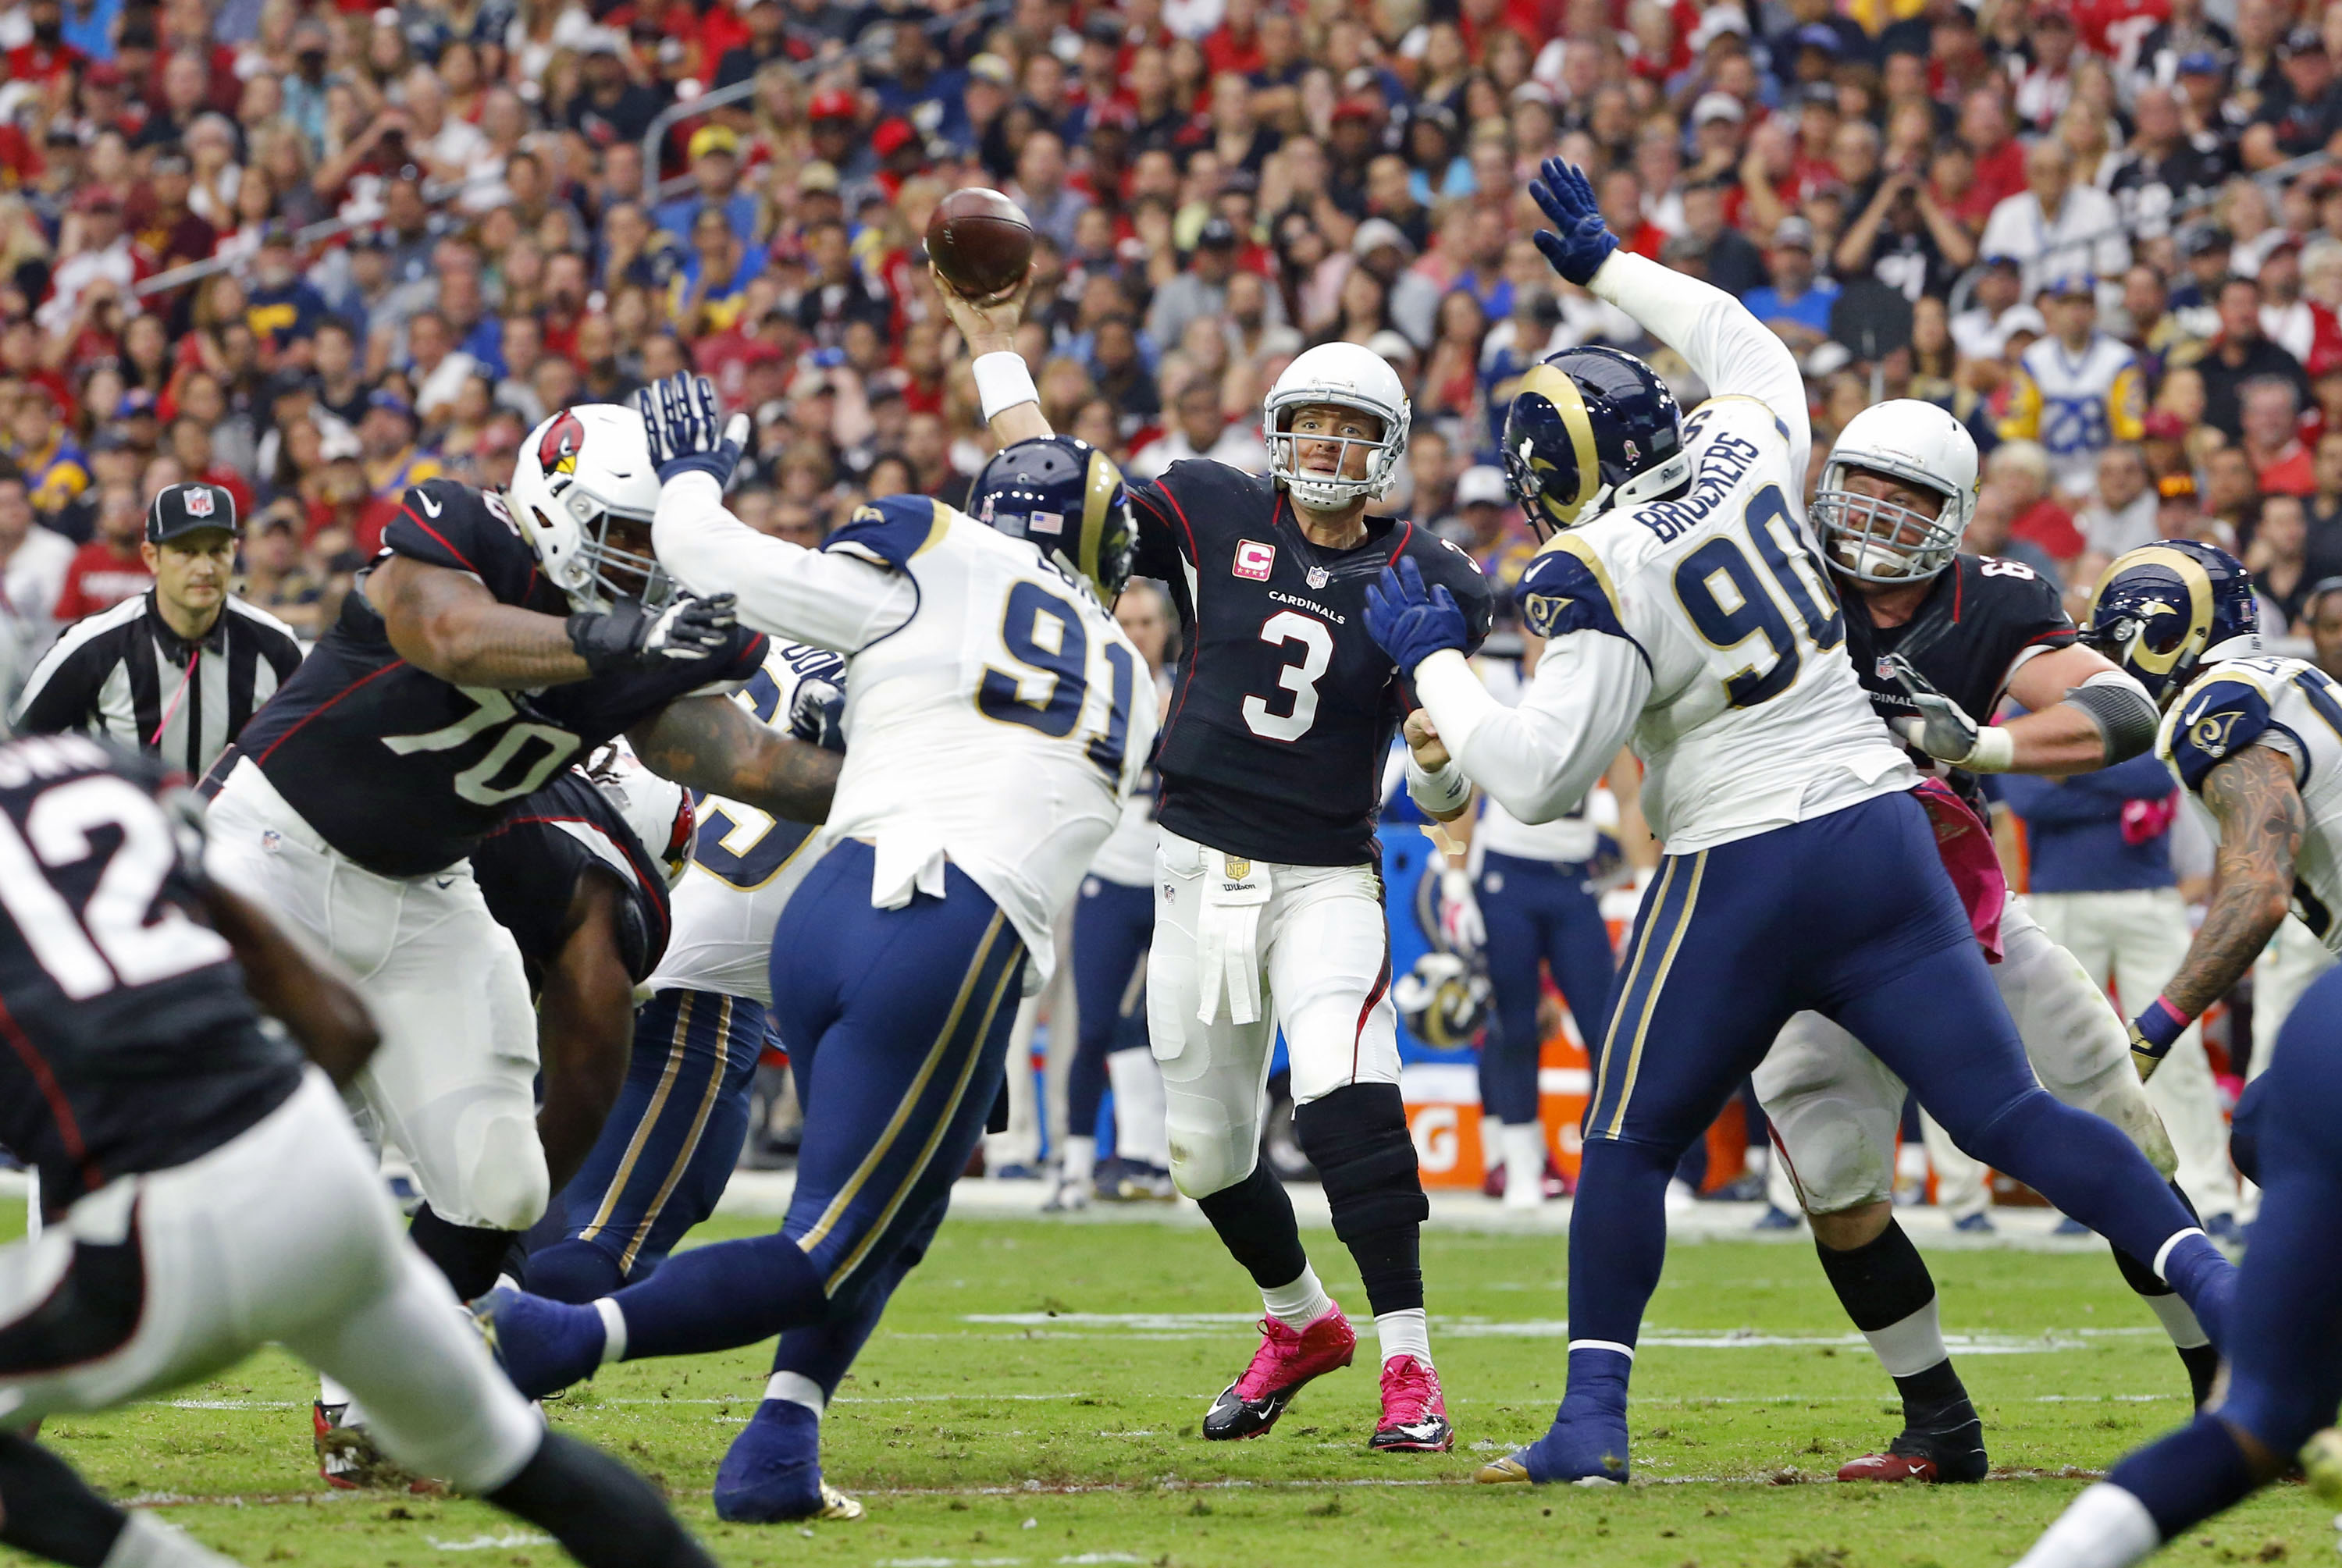 Arizona Cardinals quarterback Carson Palmer (3) throws under pressure against the St. Louis Rams during the first half of an NFL football game, Sunday, Oct. 4, 2015, in Glendale, Ariz. (David Kadlubowski/The Arizona Republic via AP)  MARICOPA COUNTY OUT;